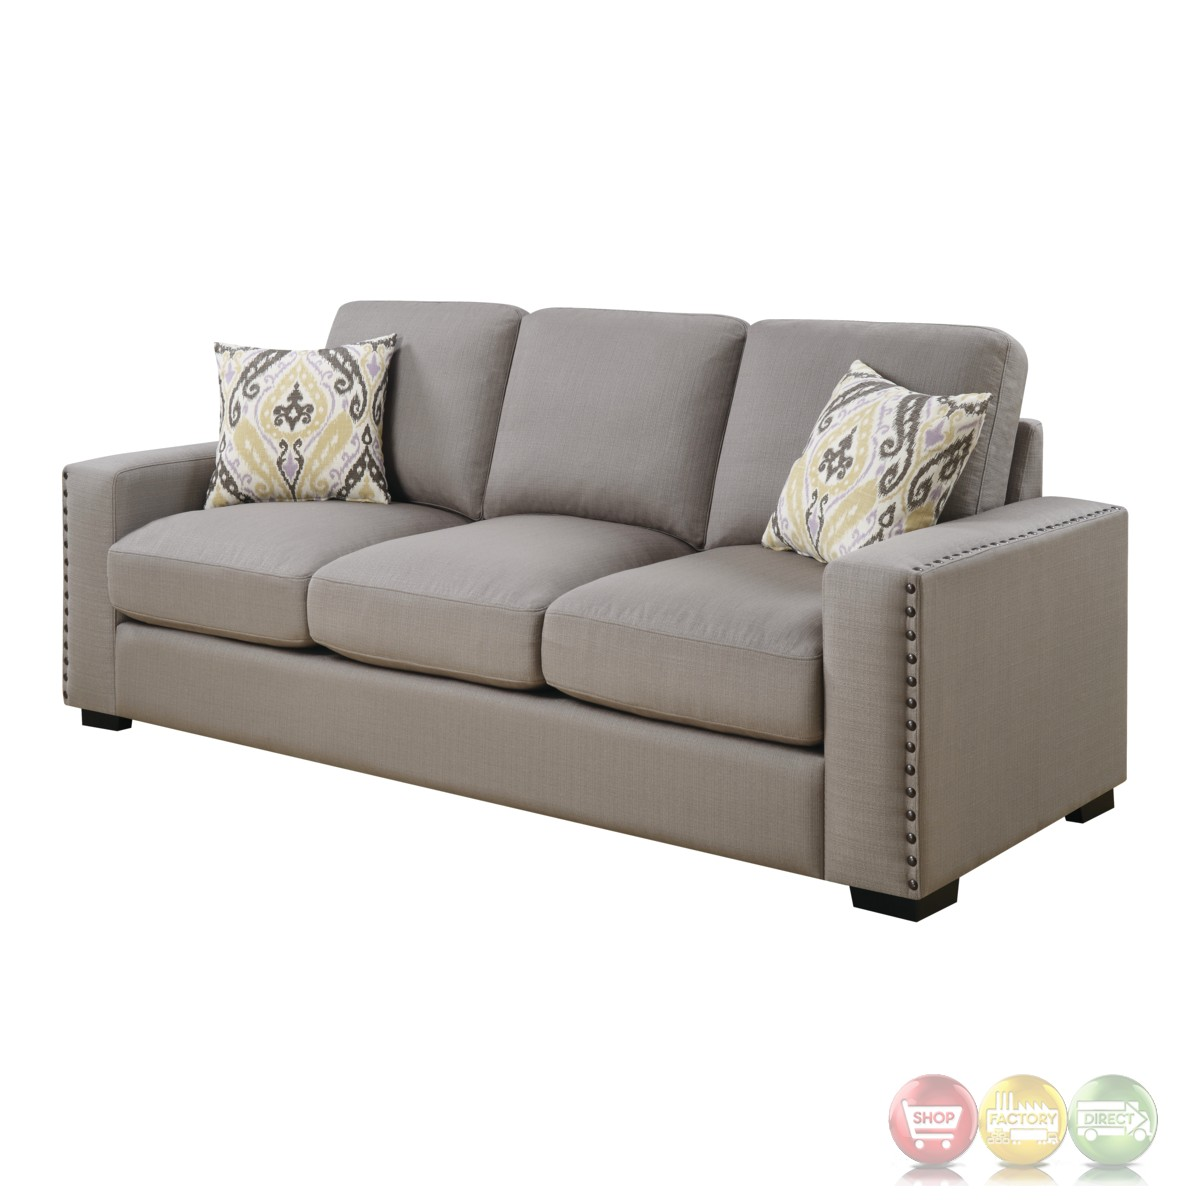 Rosanna Plush Grey Linen Sofa With Nailhead Trim. Outdoor Chandeliers. Vintage Bathrooms. Cortec Flooring. Kitchen Ceiling Ideas. Behr Wheat Bread. Small Kitchen Remodeling Ideas. Cool Kids Beds. Feng Shui Rules